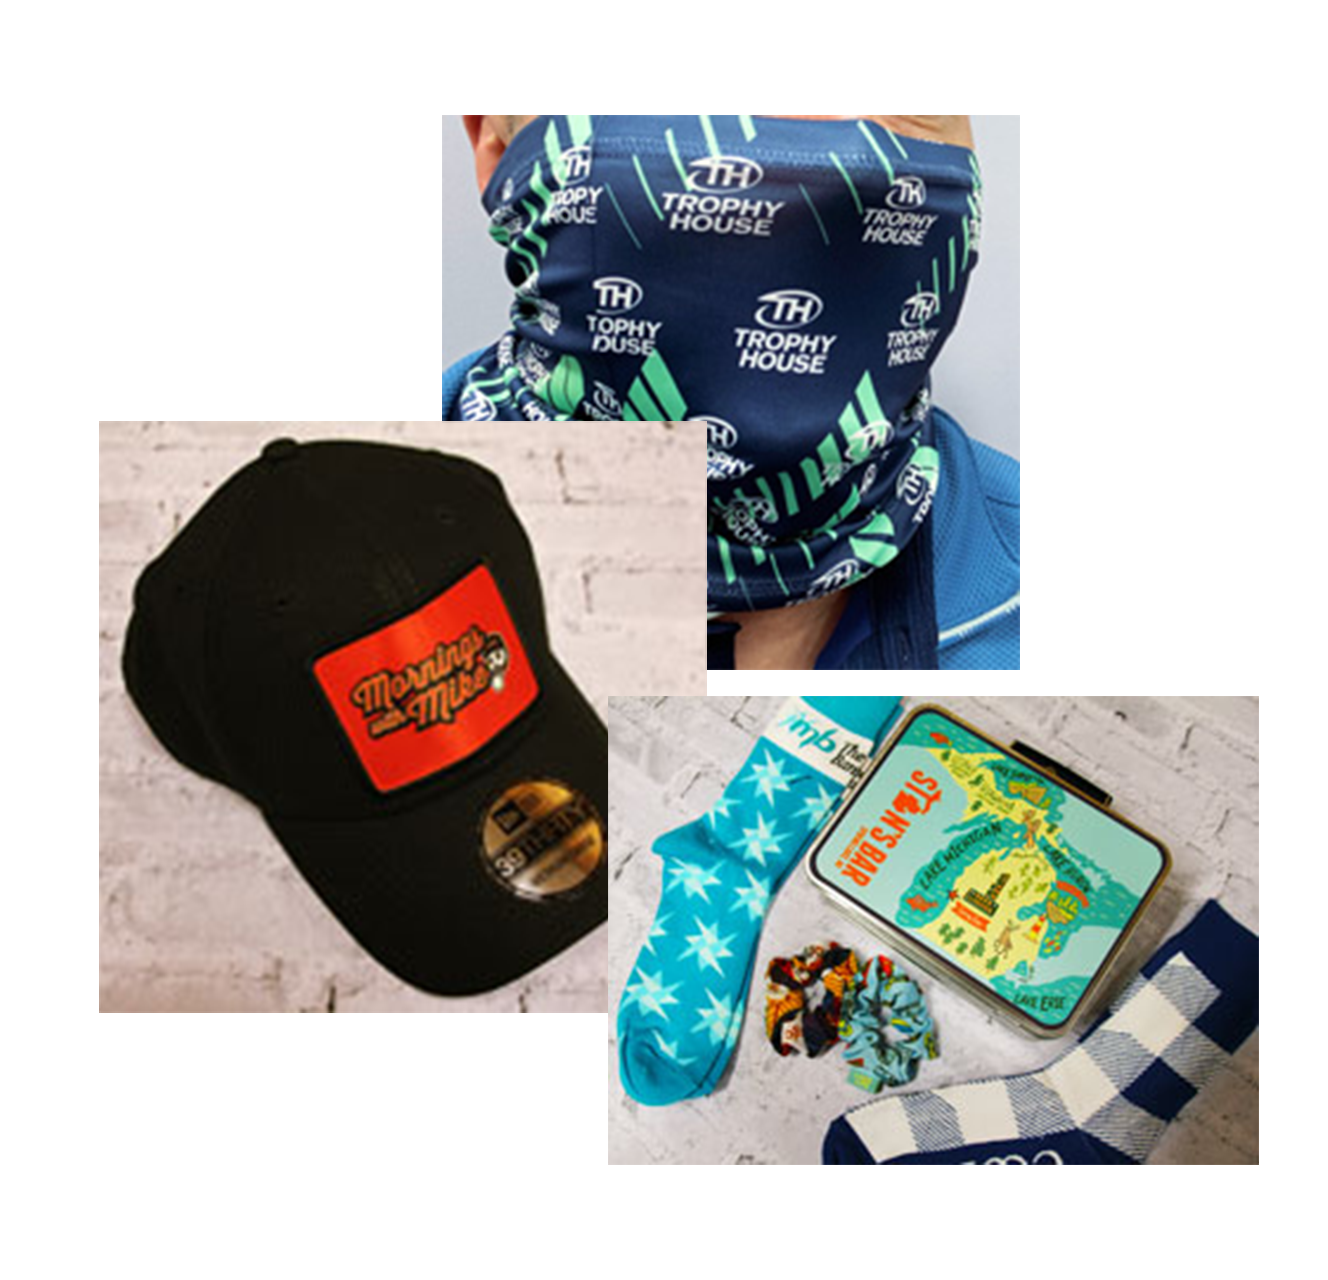 sublimated item collage